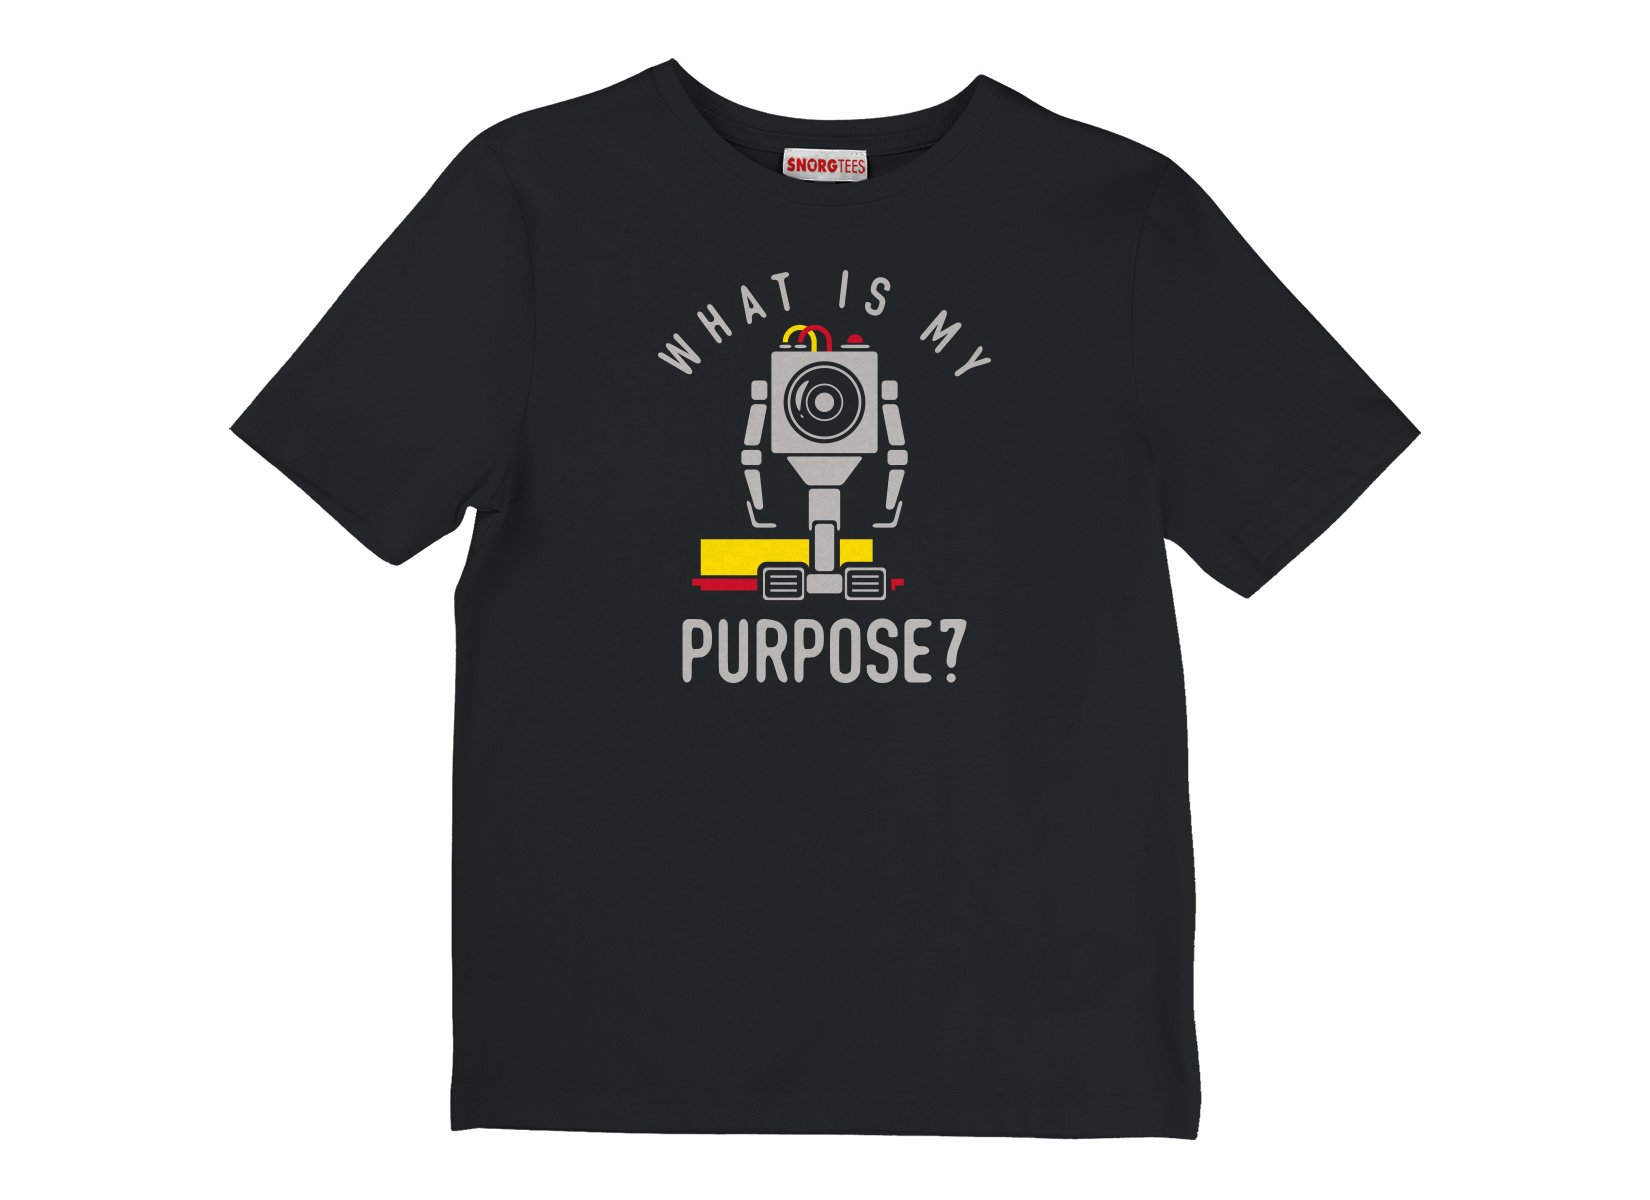 What Is My Purpose? on Kids T-Shirt